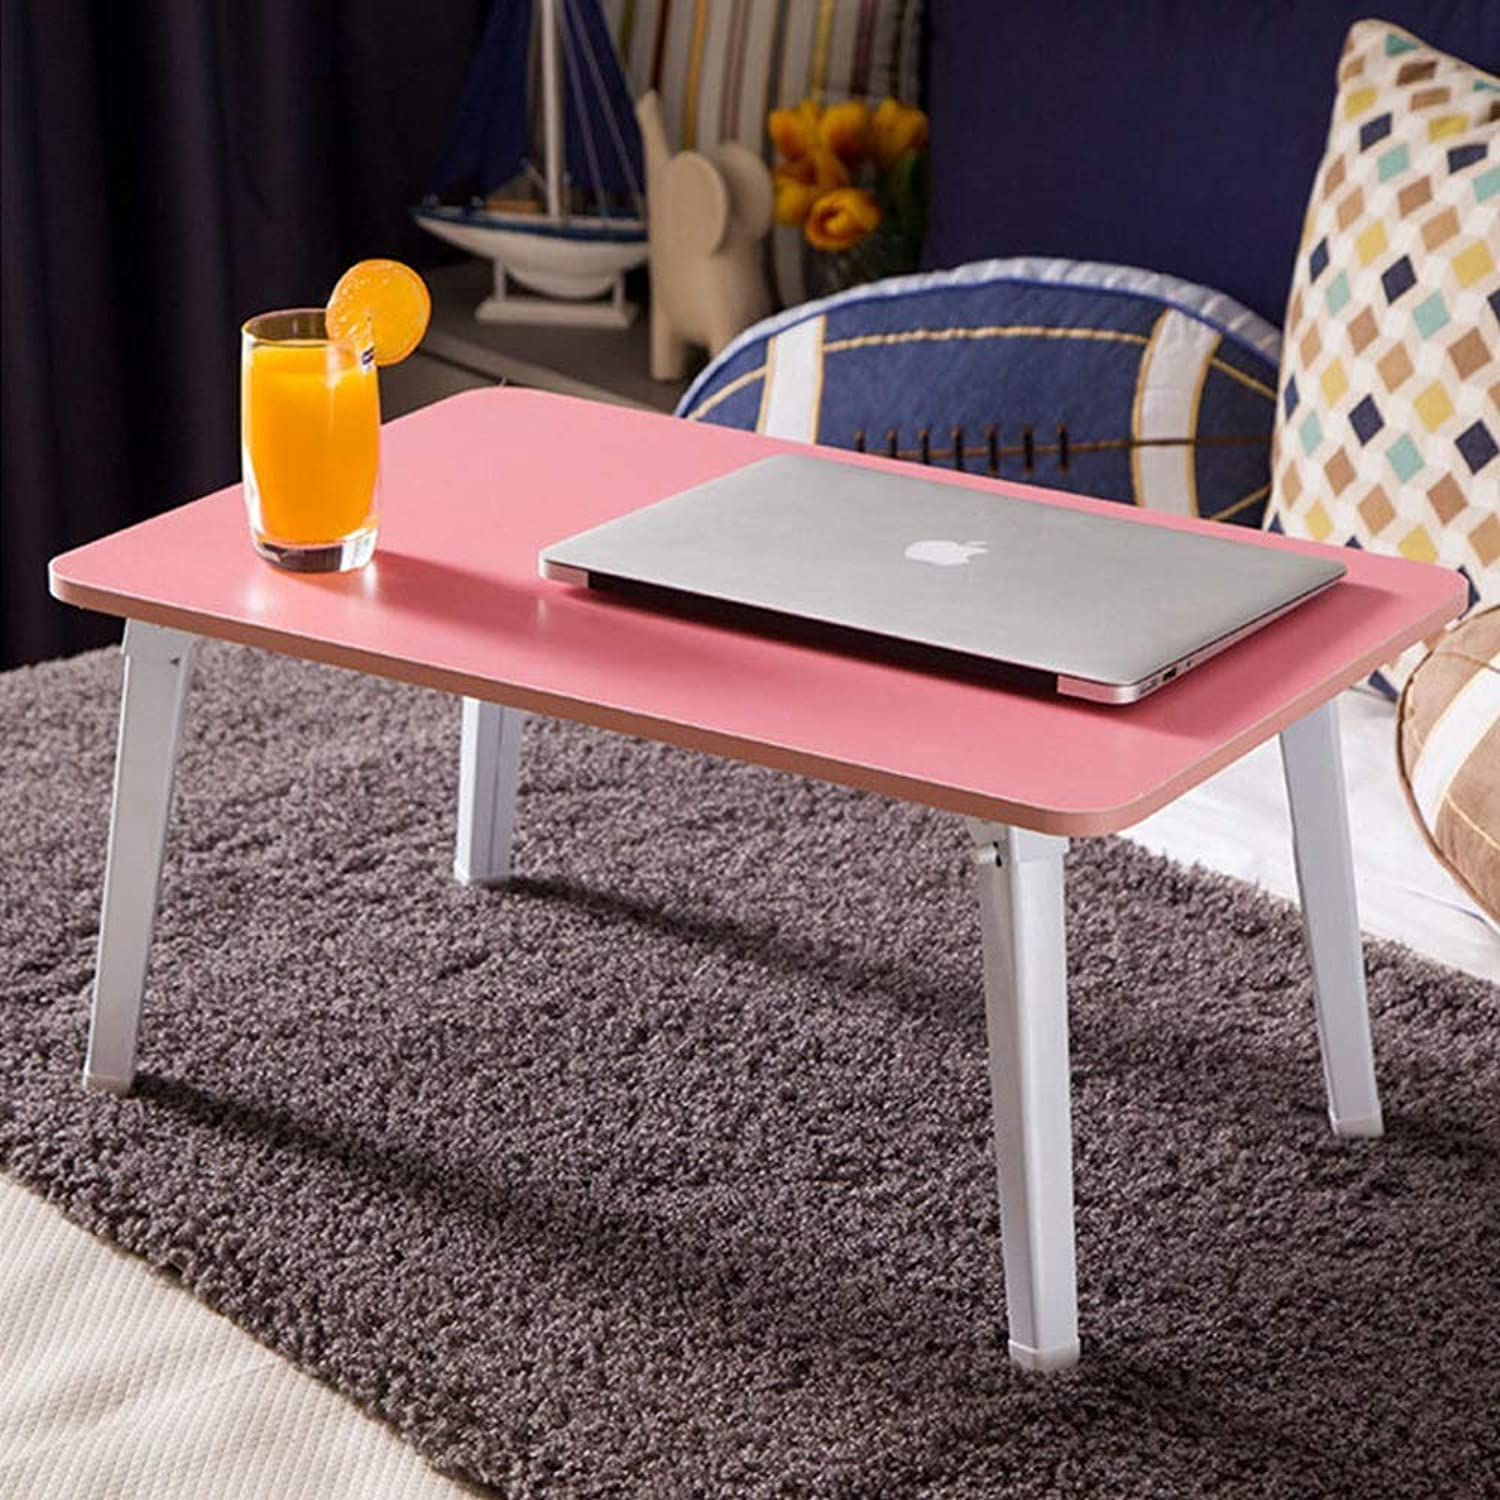 LiTing-Folding Table Foldable Table Bed Desk Computer Table Dormitory Small Table Simple Bedroom Office Home Computer Desk Pink (Size  60x40x30cm)